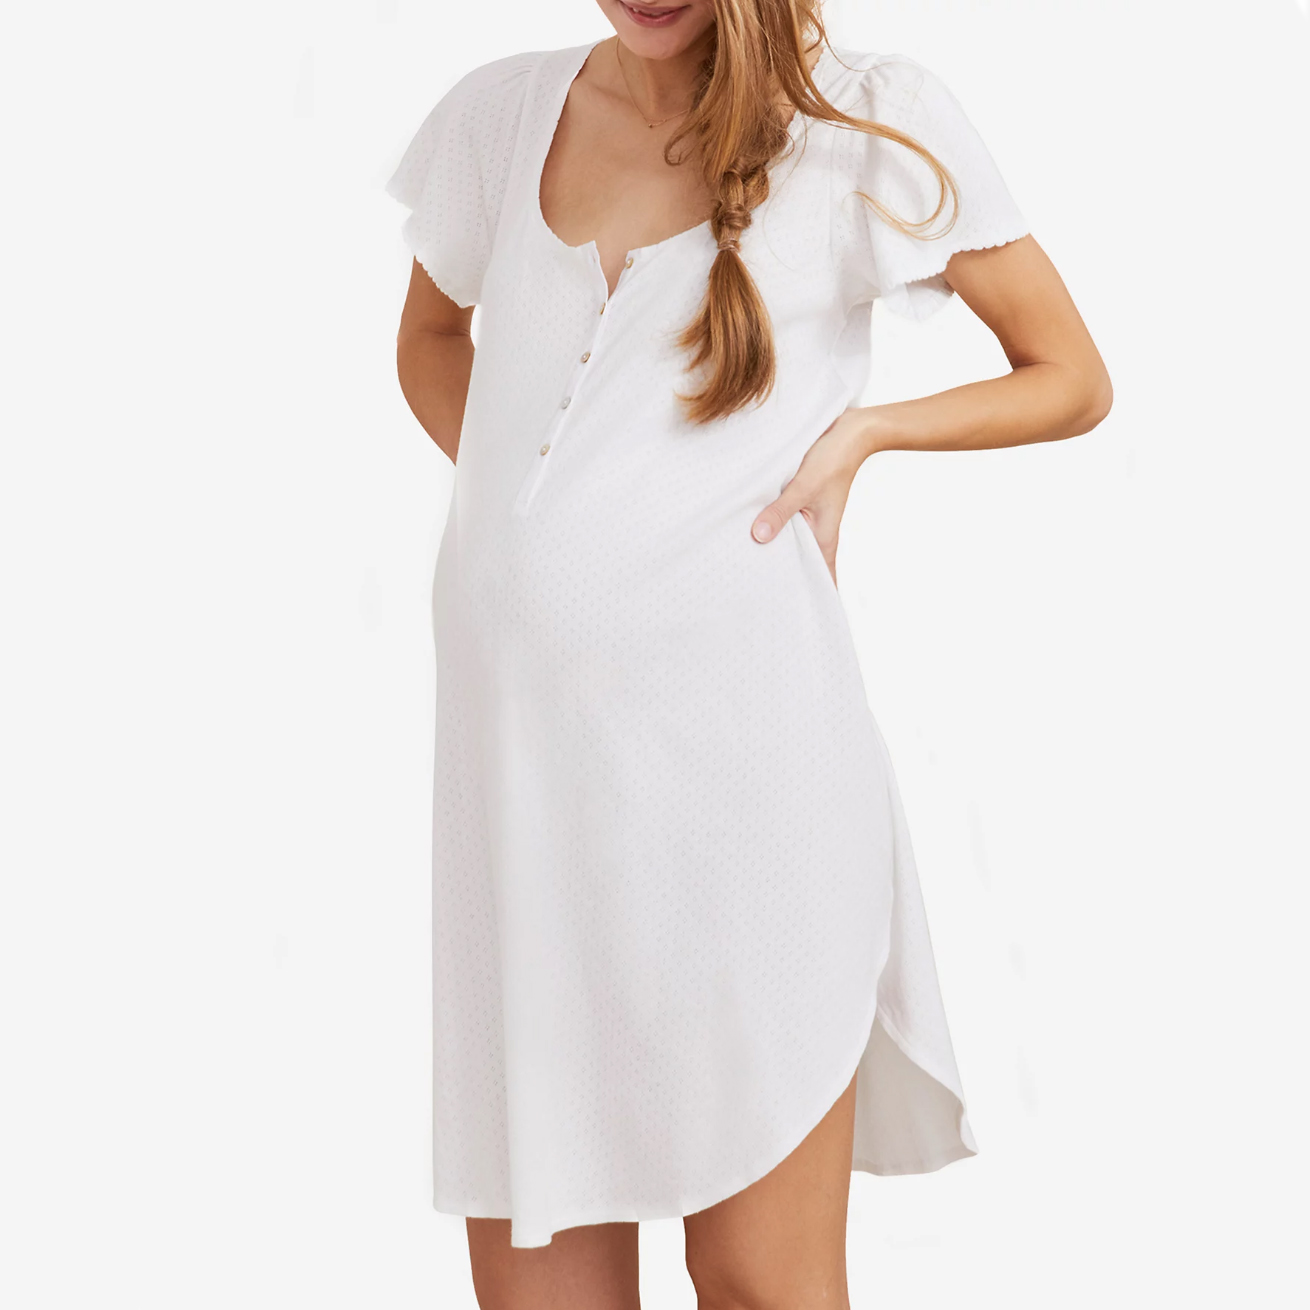 best nightgowns maternity